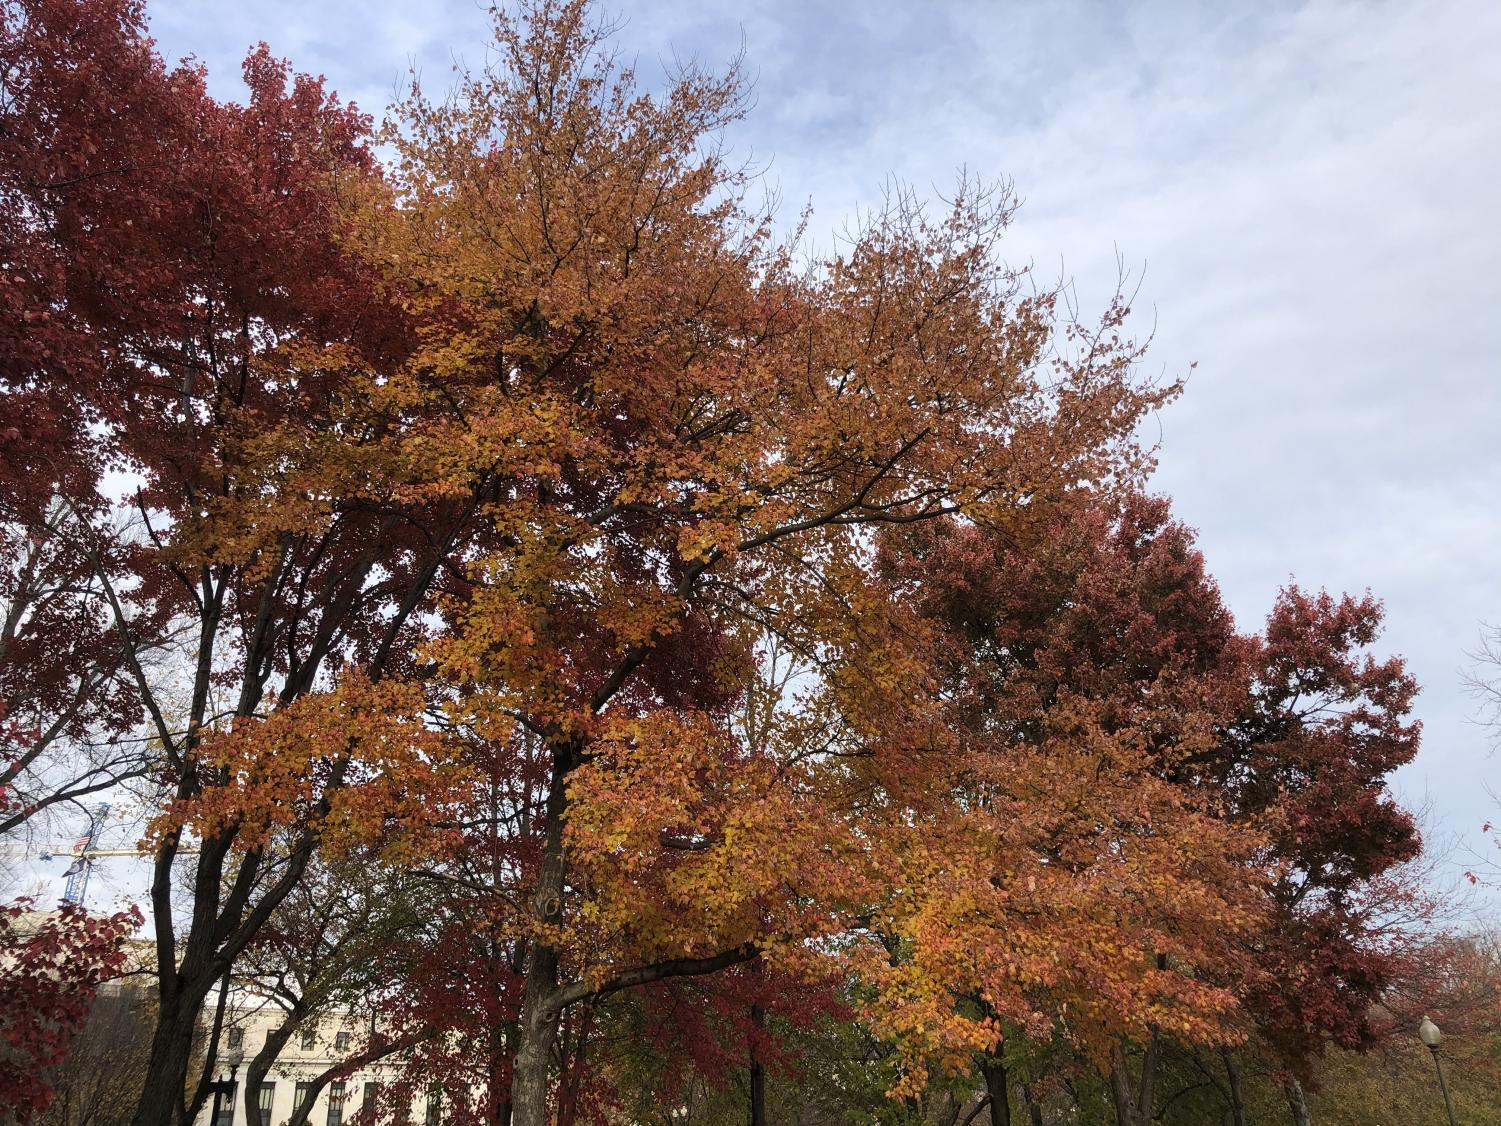 Audiences can find several comparisons between characters in the novel, A Tree Grows in Brooklyn, and trees themselves. (Ashlynn Roberts / The Talon News)